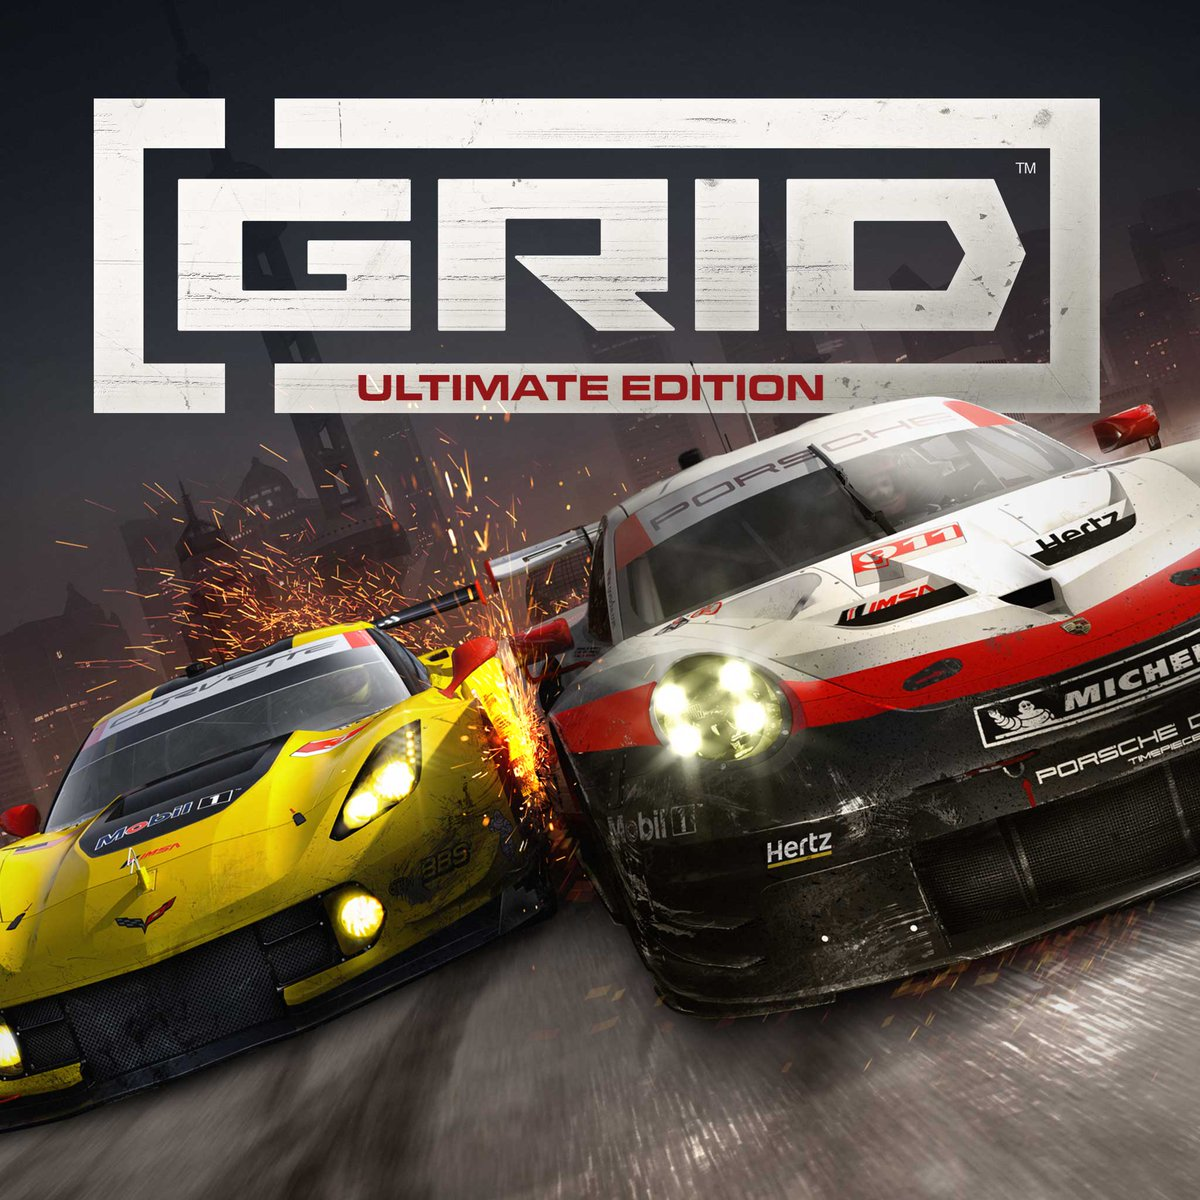 Nearly 100 events, exclusive liveries and so much more await Ultimate Edition players in GRID. Pre-order now to play from October 8* ⬇️ Steam: bit.ly/GRIDSteam PS4: bit.ly/GRIDPS4 Xbox: bit.ly/GRIDXbox *3 days early access digital-only in North America